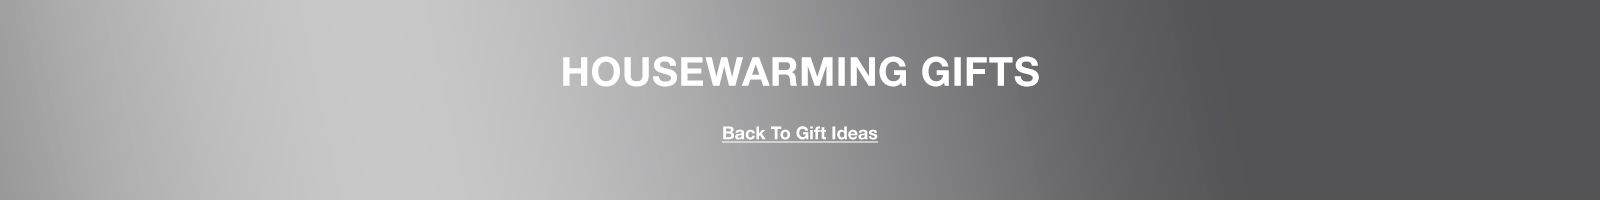 Housewarming Gifts, Back to Gift Ideas